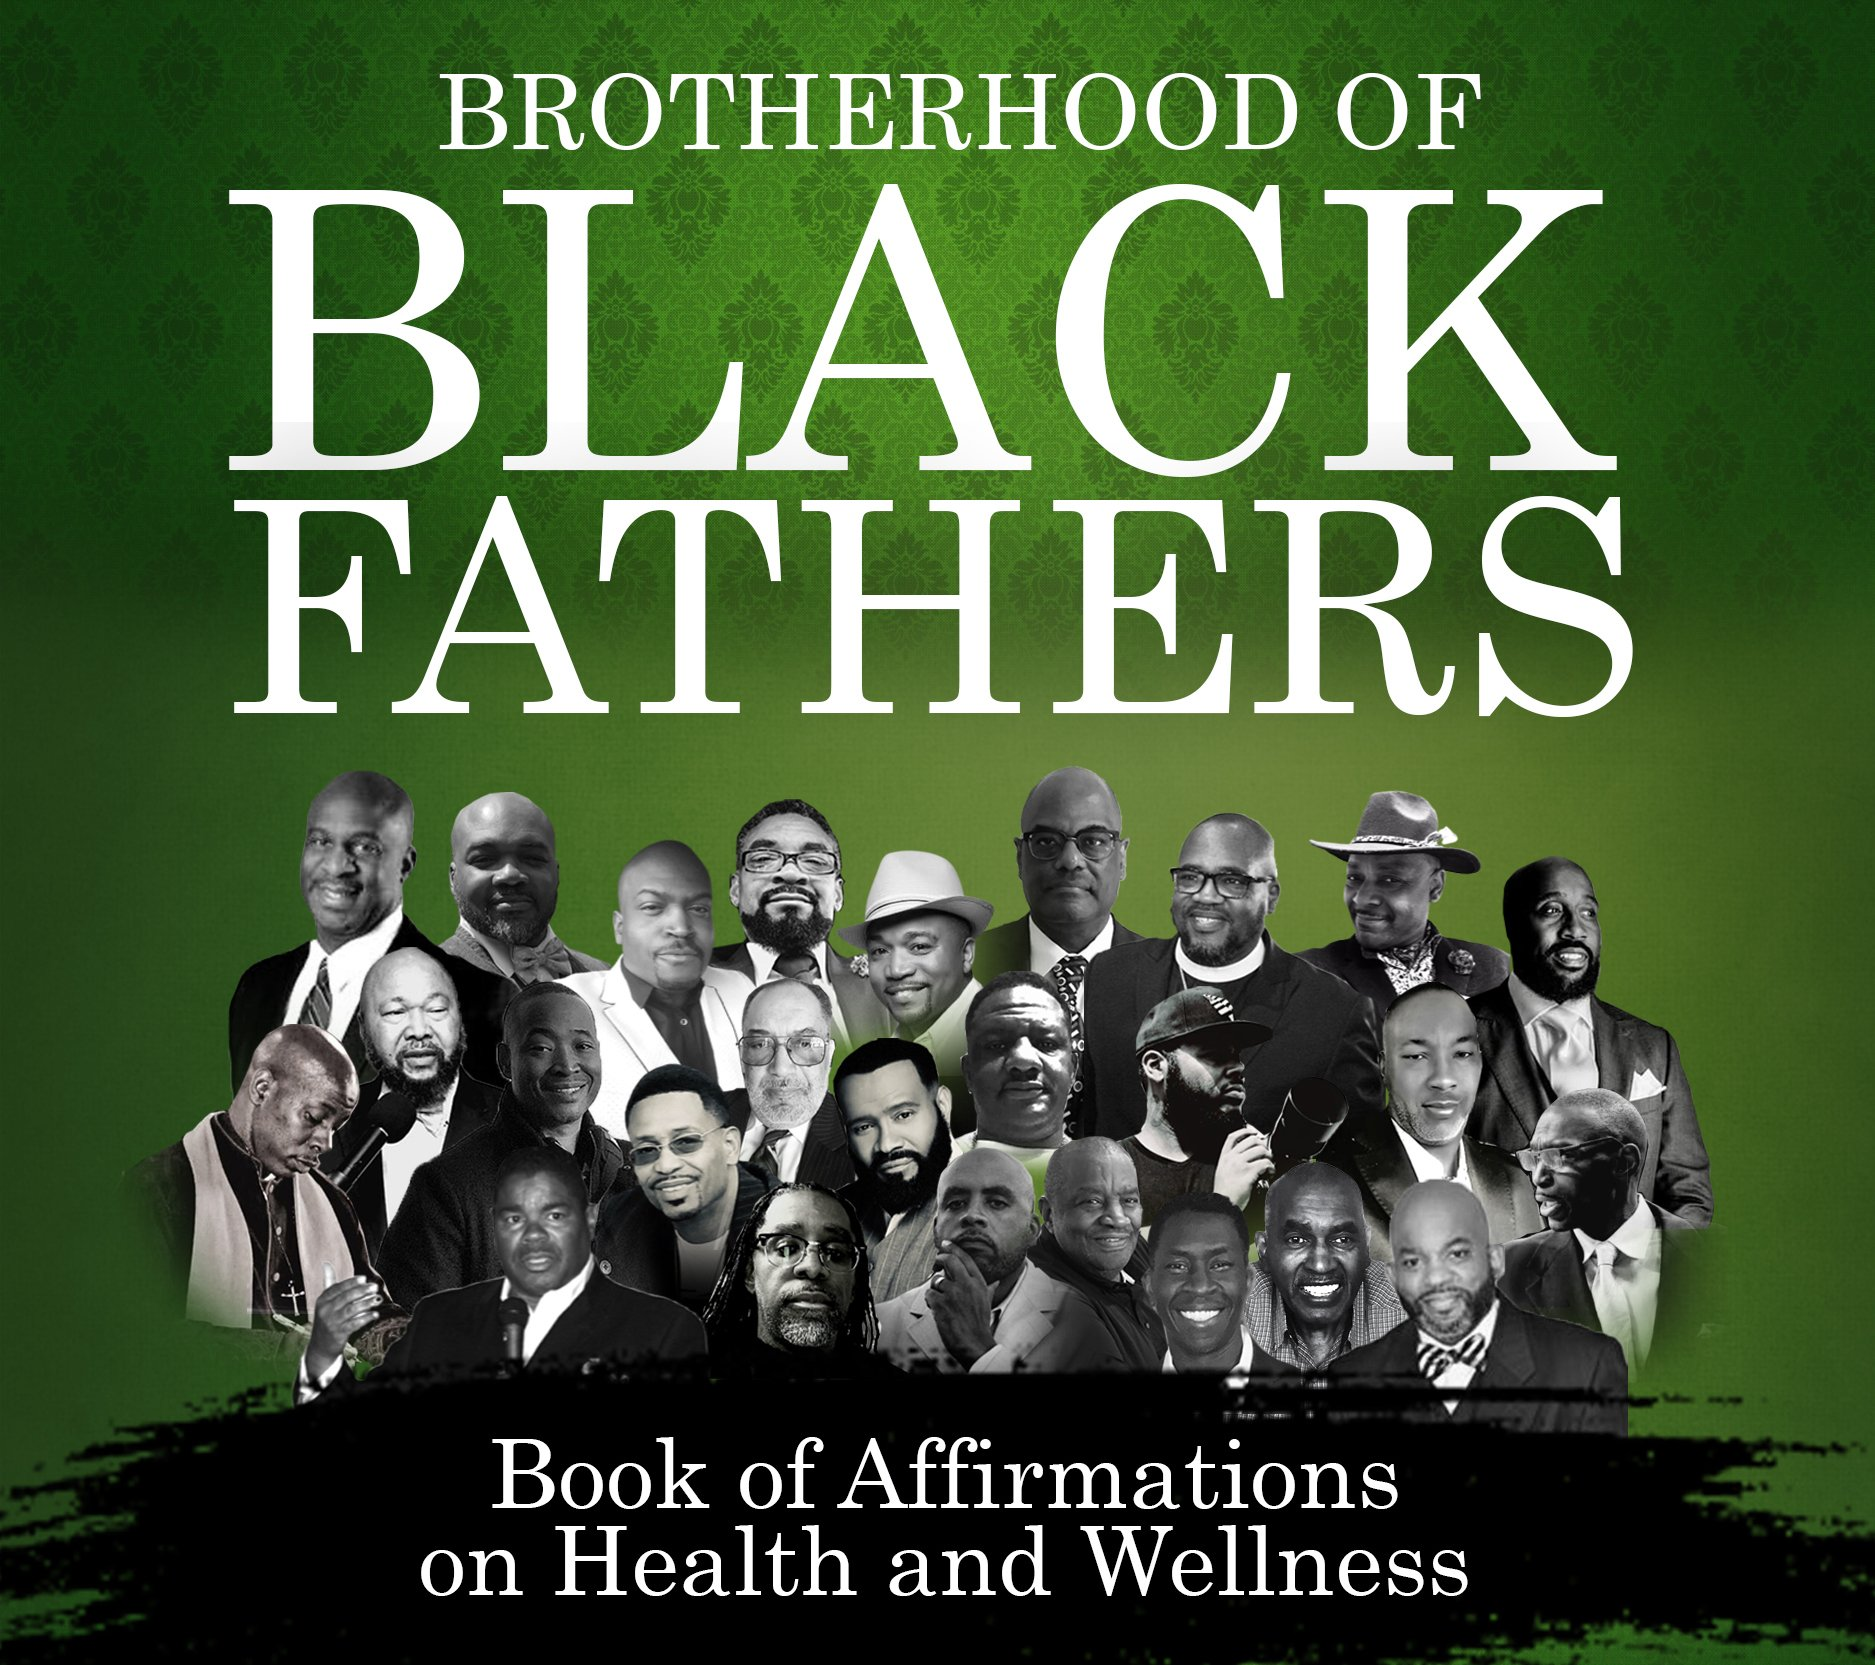 Nikita Y. Jackson's New Book Brotherhood of Black Fathers, Book of Affirmations on Health and Wellness, Coming in November 2020!